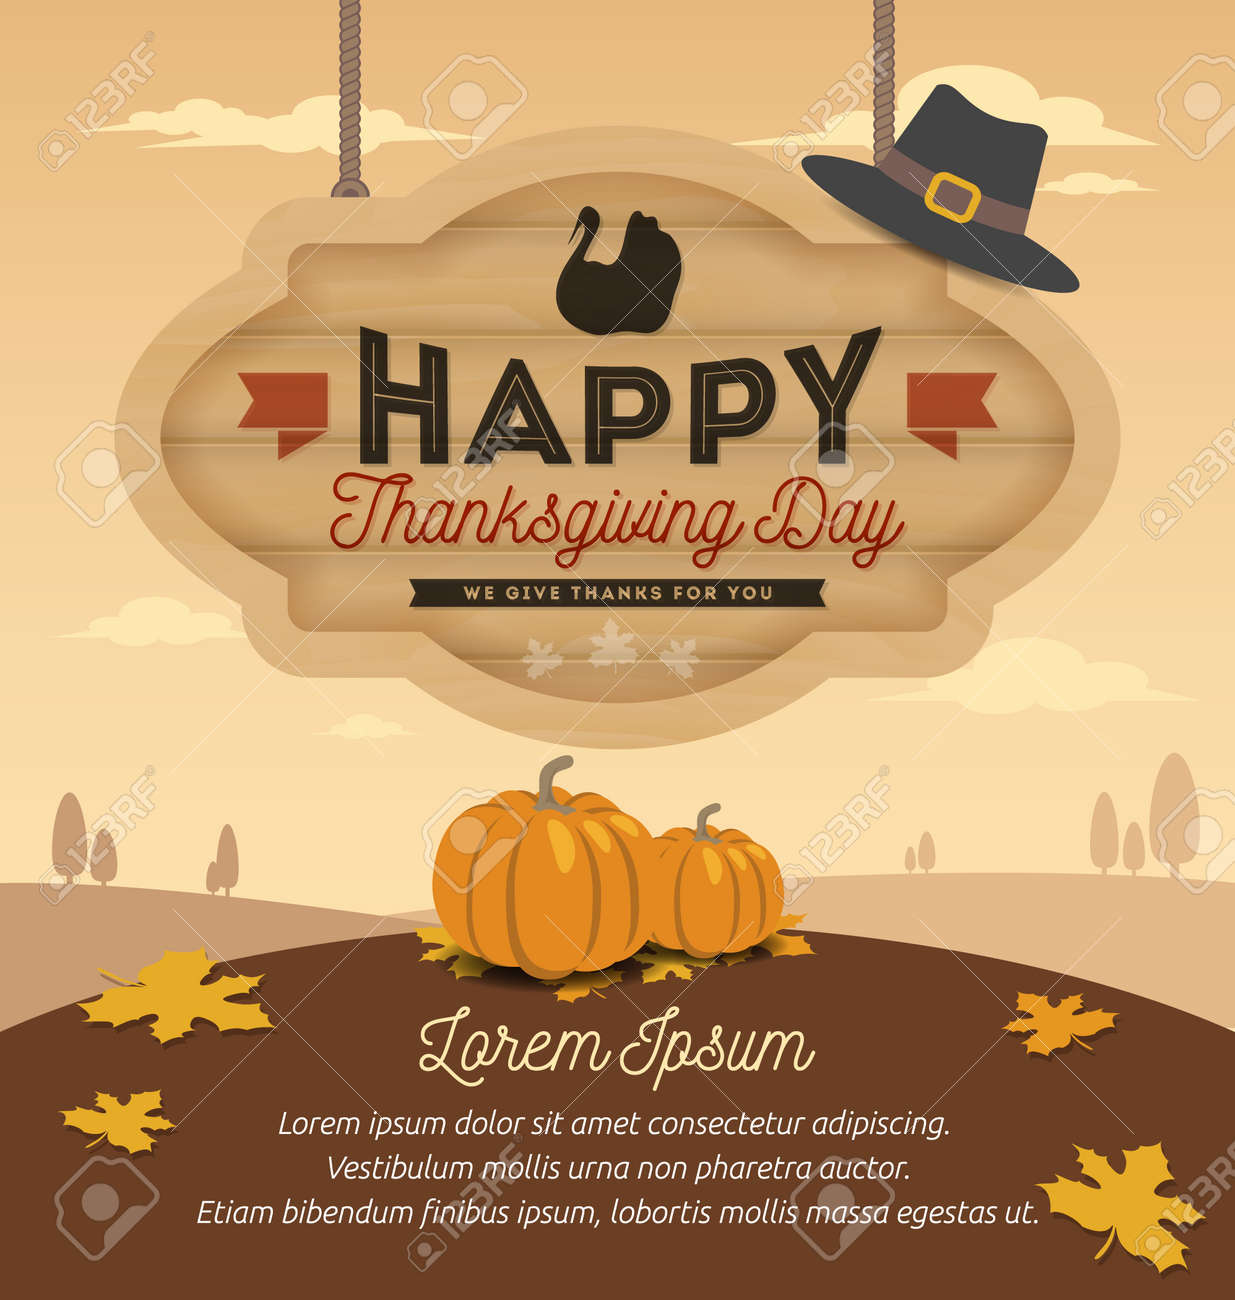 Happy Thanksgiving Card Design, Happy Thanksgiving Day On Wooden Board Hanging. Vector illustration - 48006389